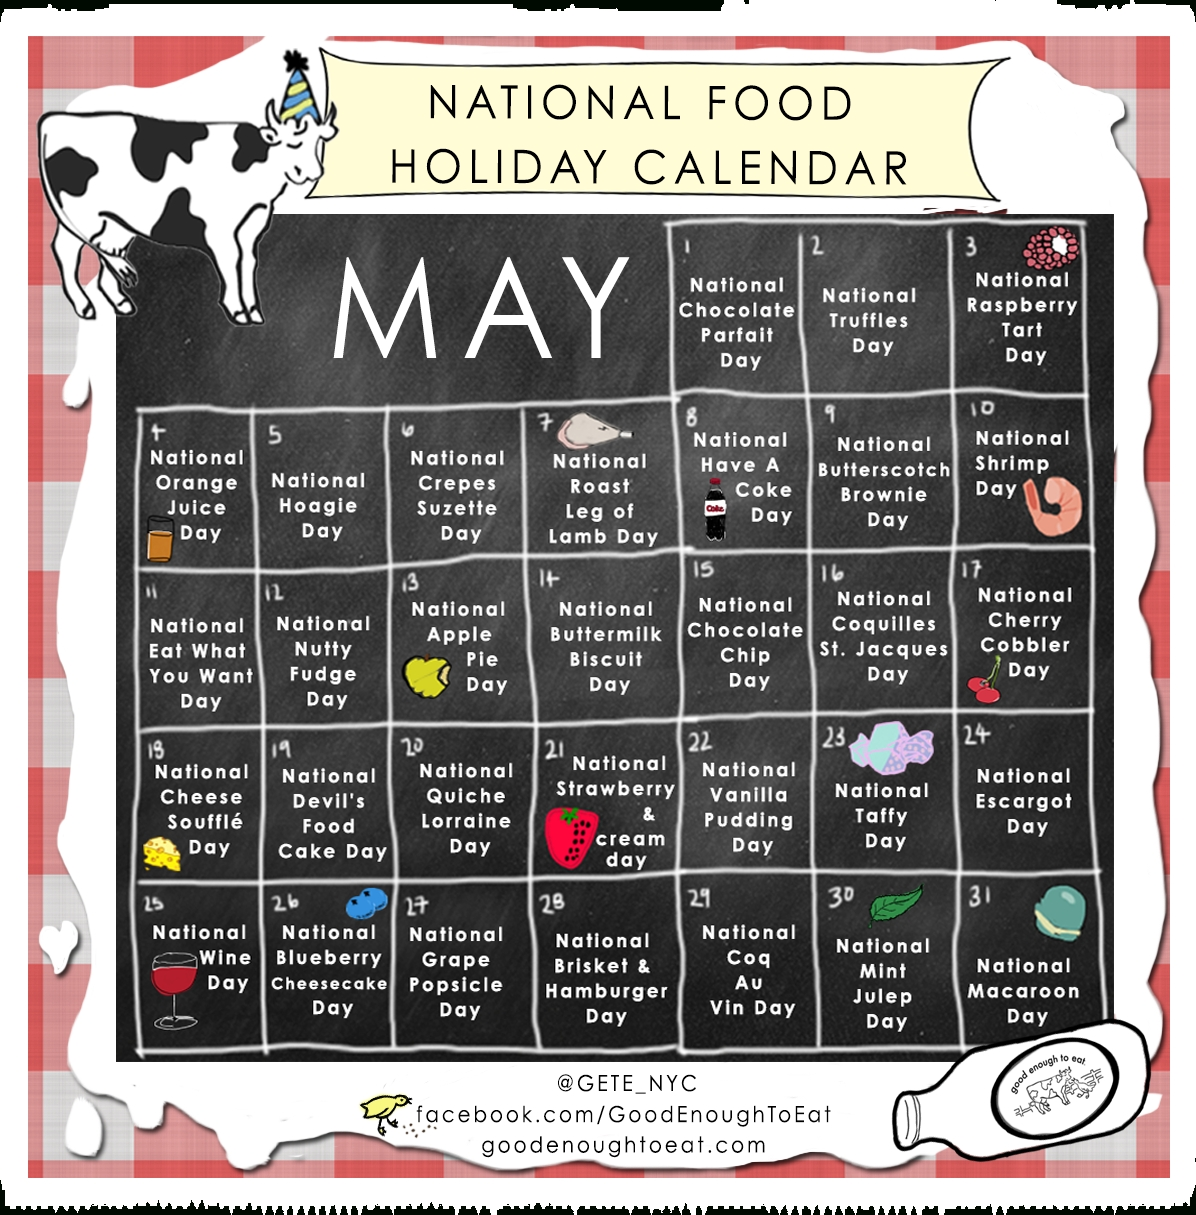 National Food Holiday Calendar - May | Visual.ly intended for Calendar Of National Food Days